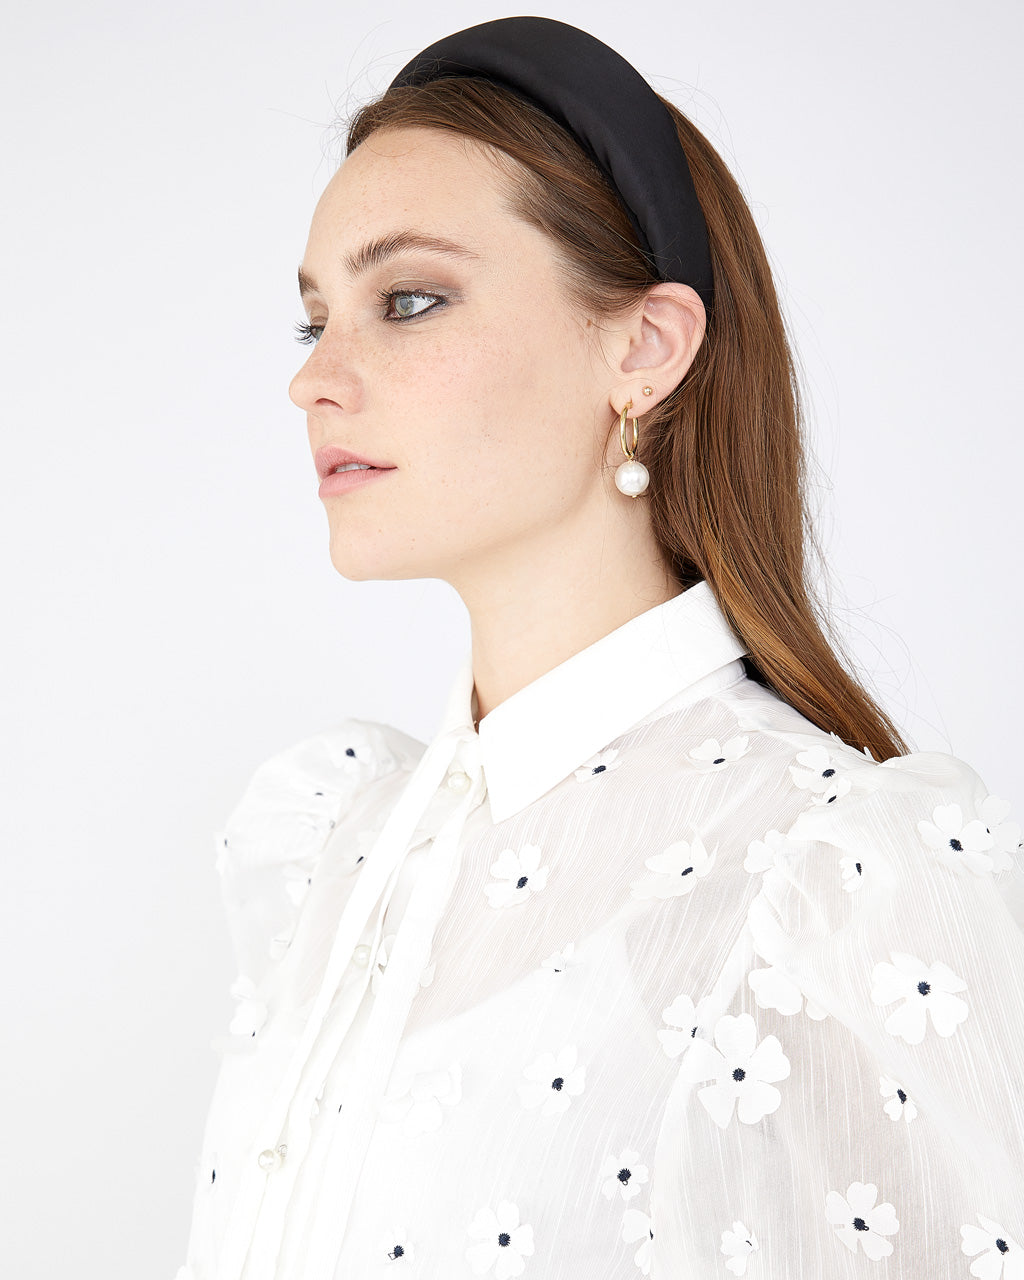 White blouse with puffy sleeves and neck bow